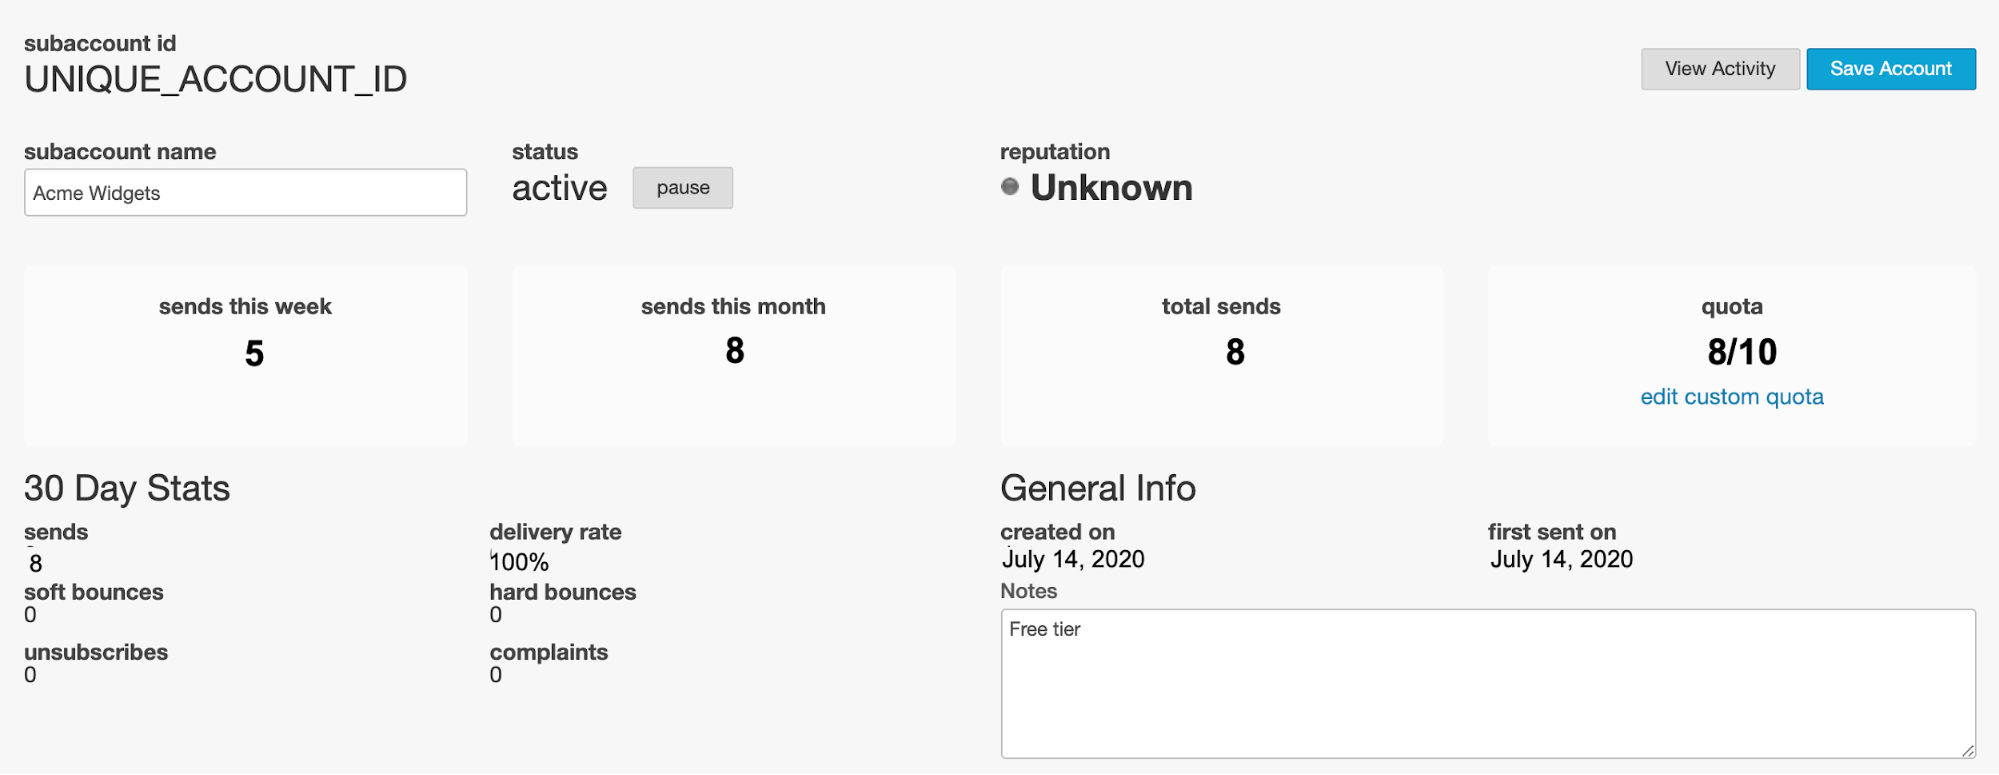 An image of the subaccounts dashboard